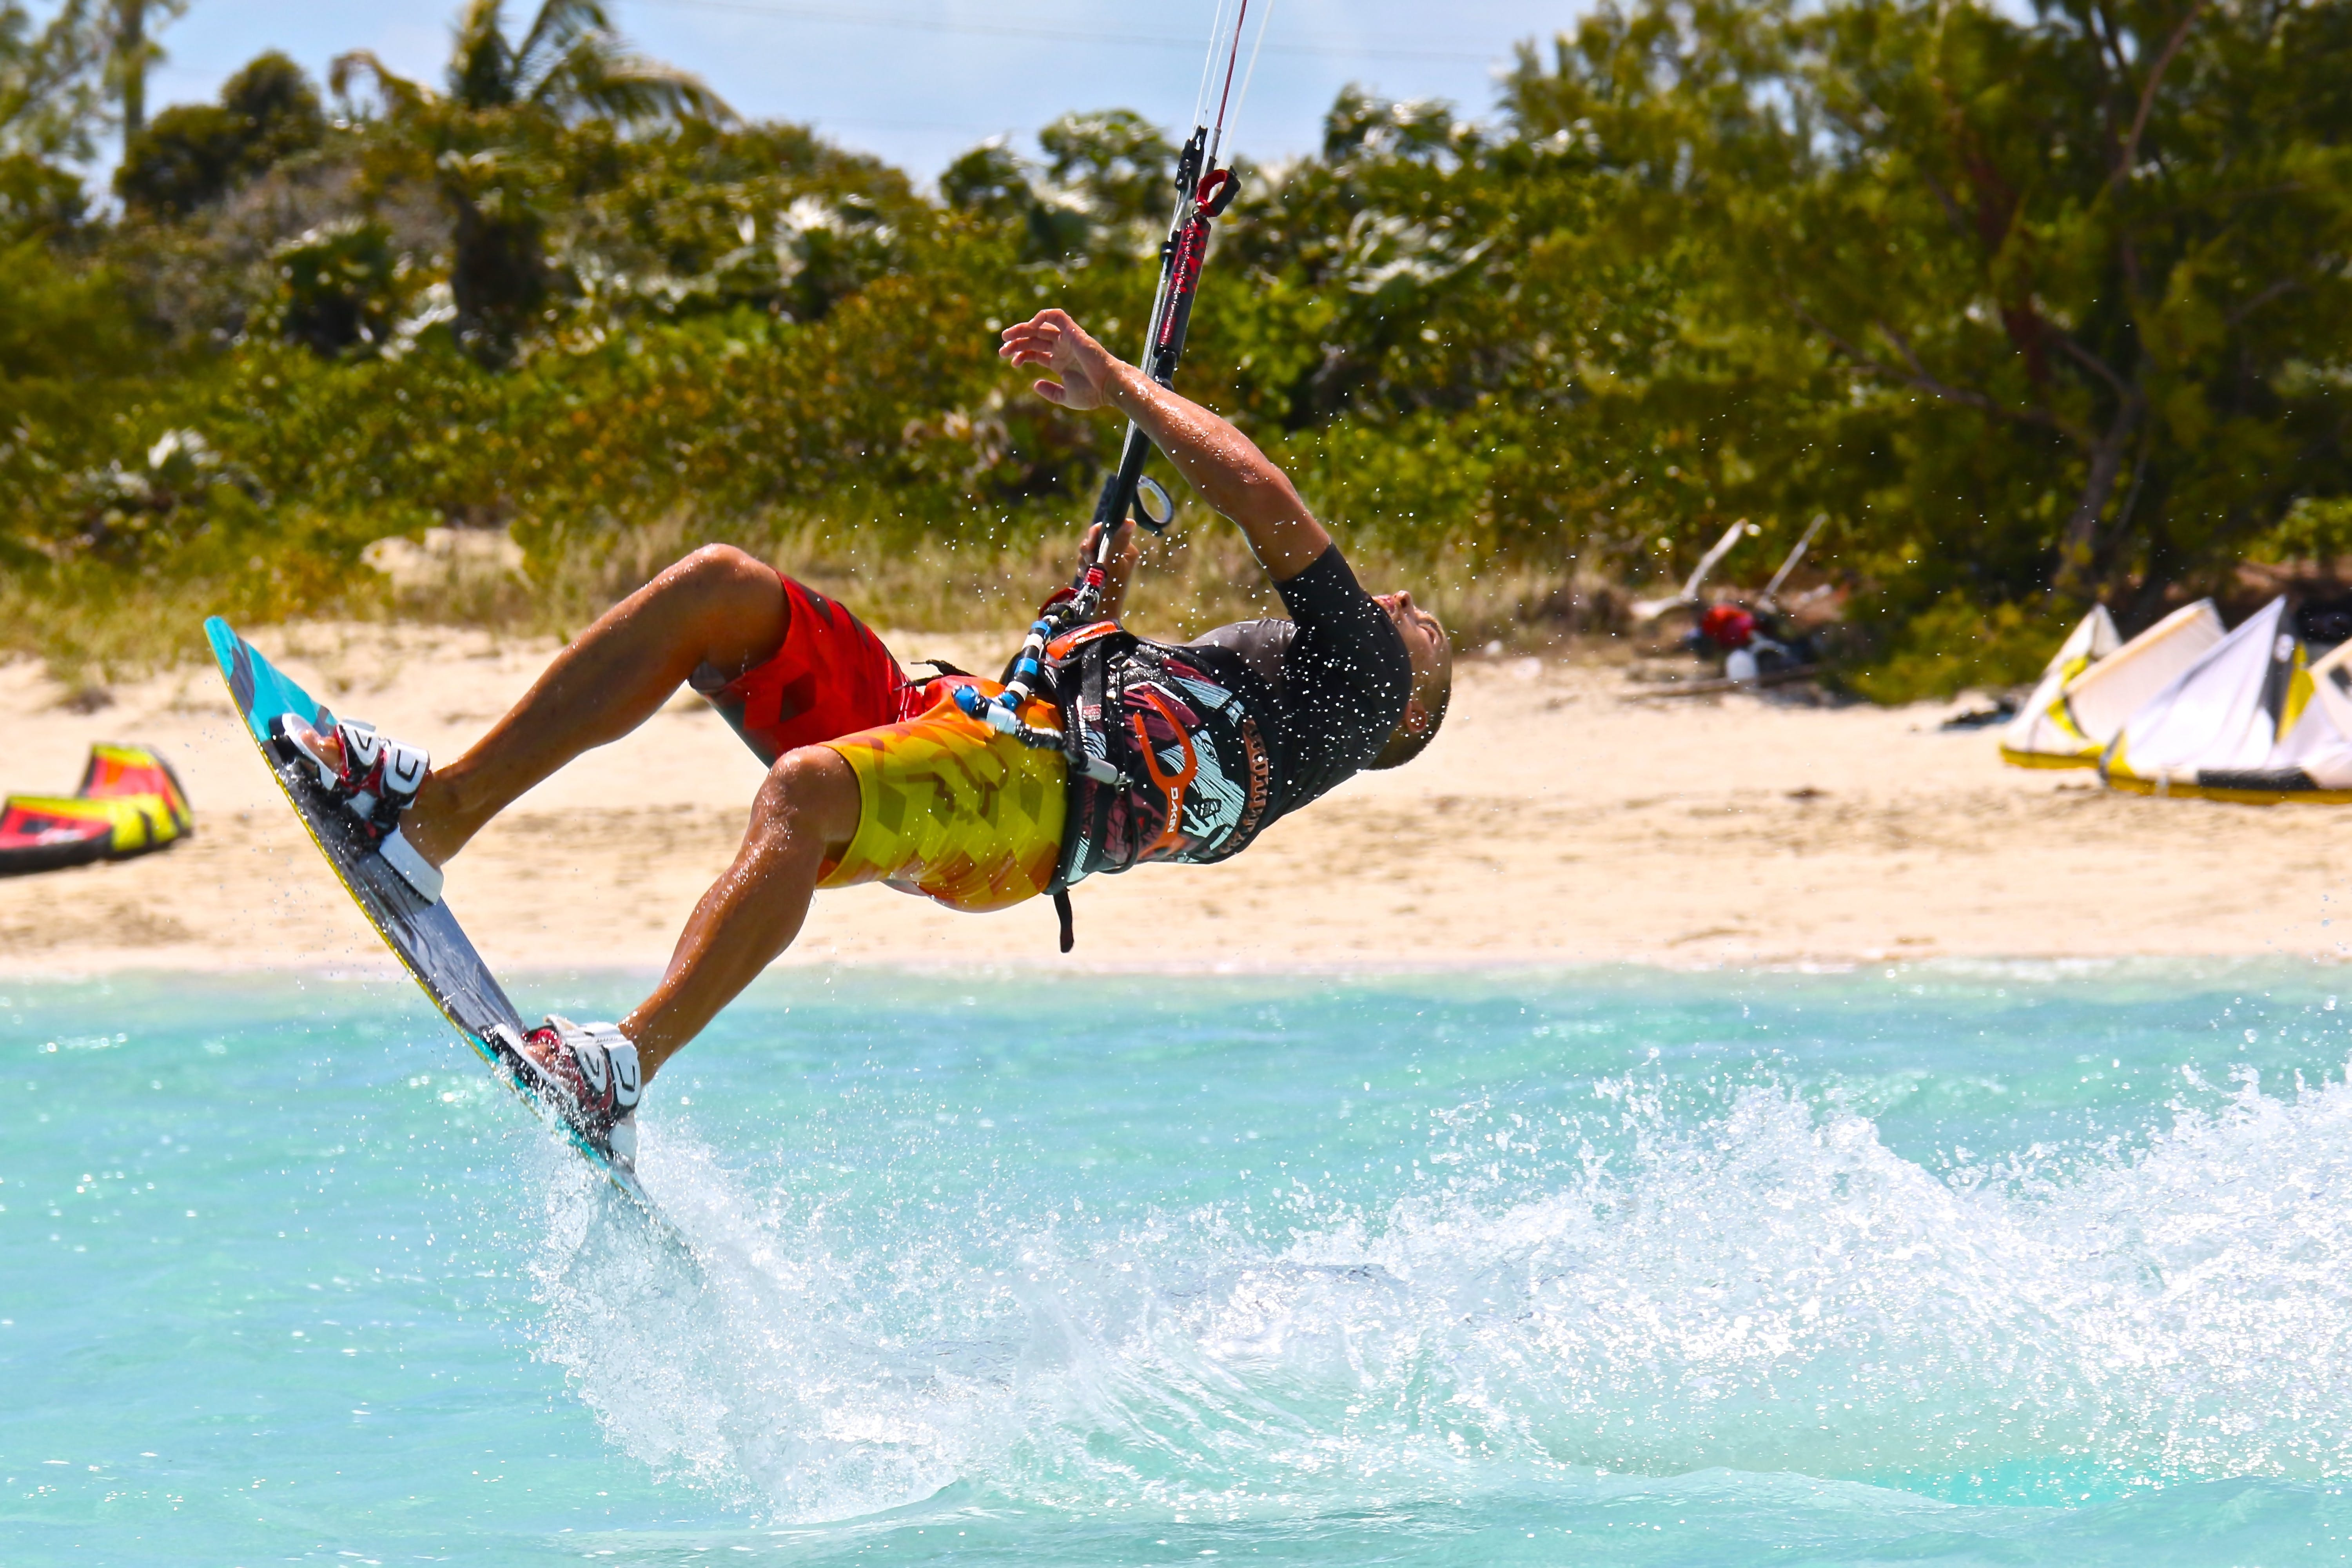 Man in Wakeboard